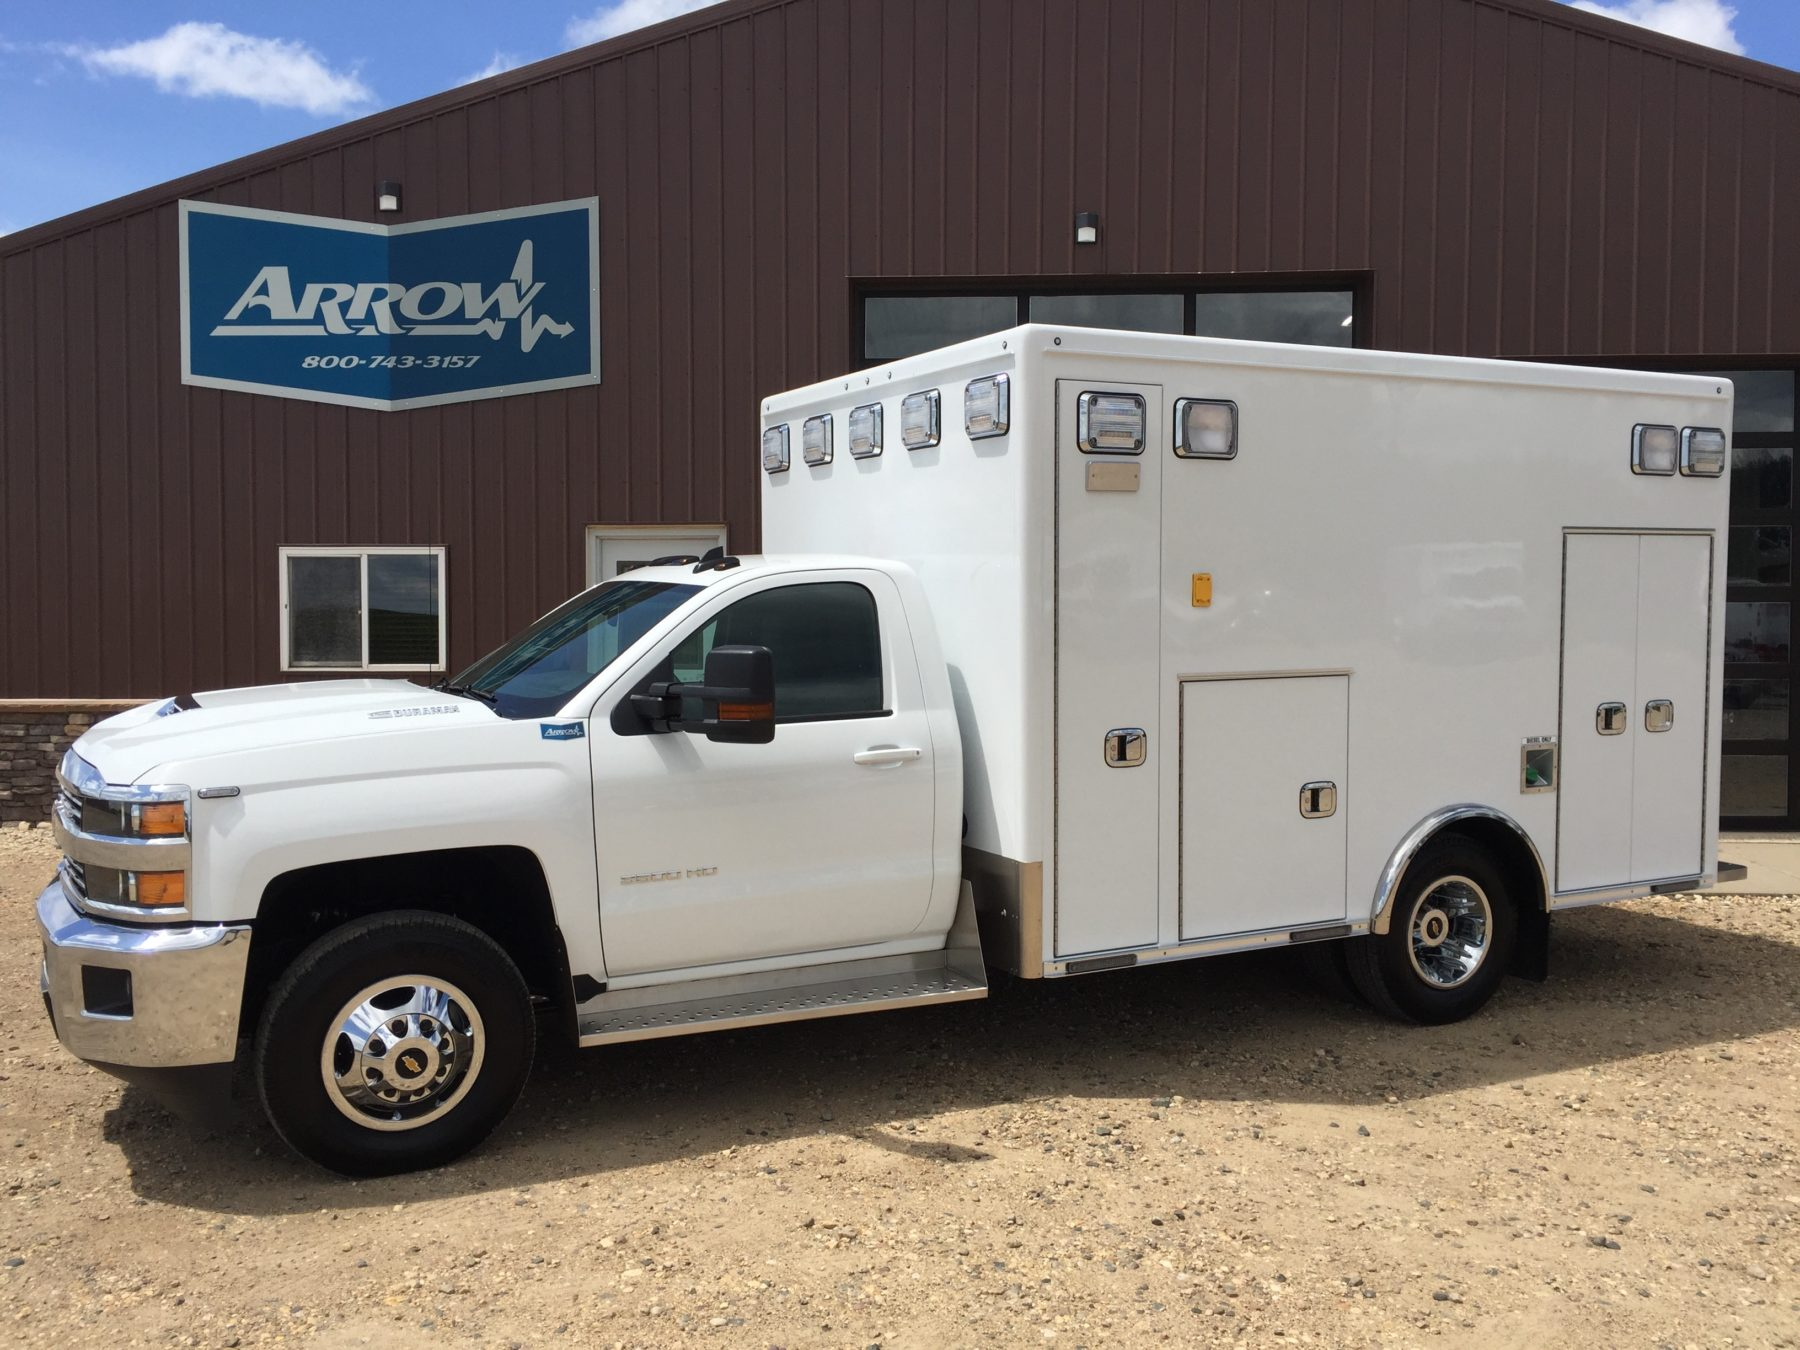 2018 Chevrolet K3500 4x4 Type 1 Ambulance For Sale – Picture 1